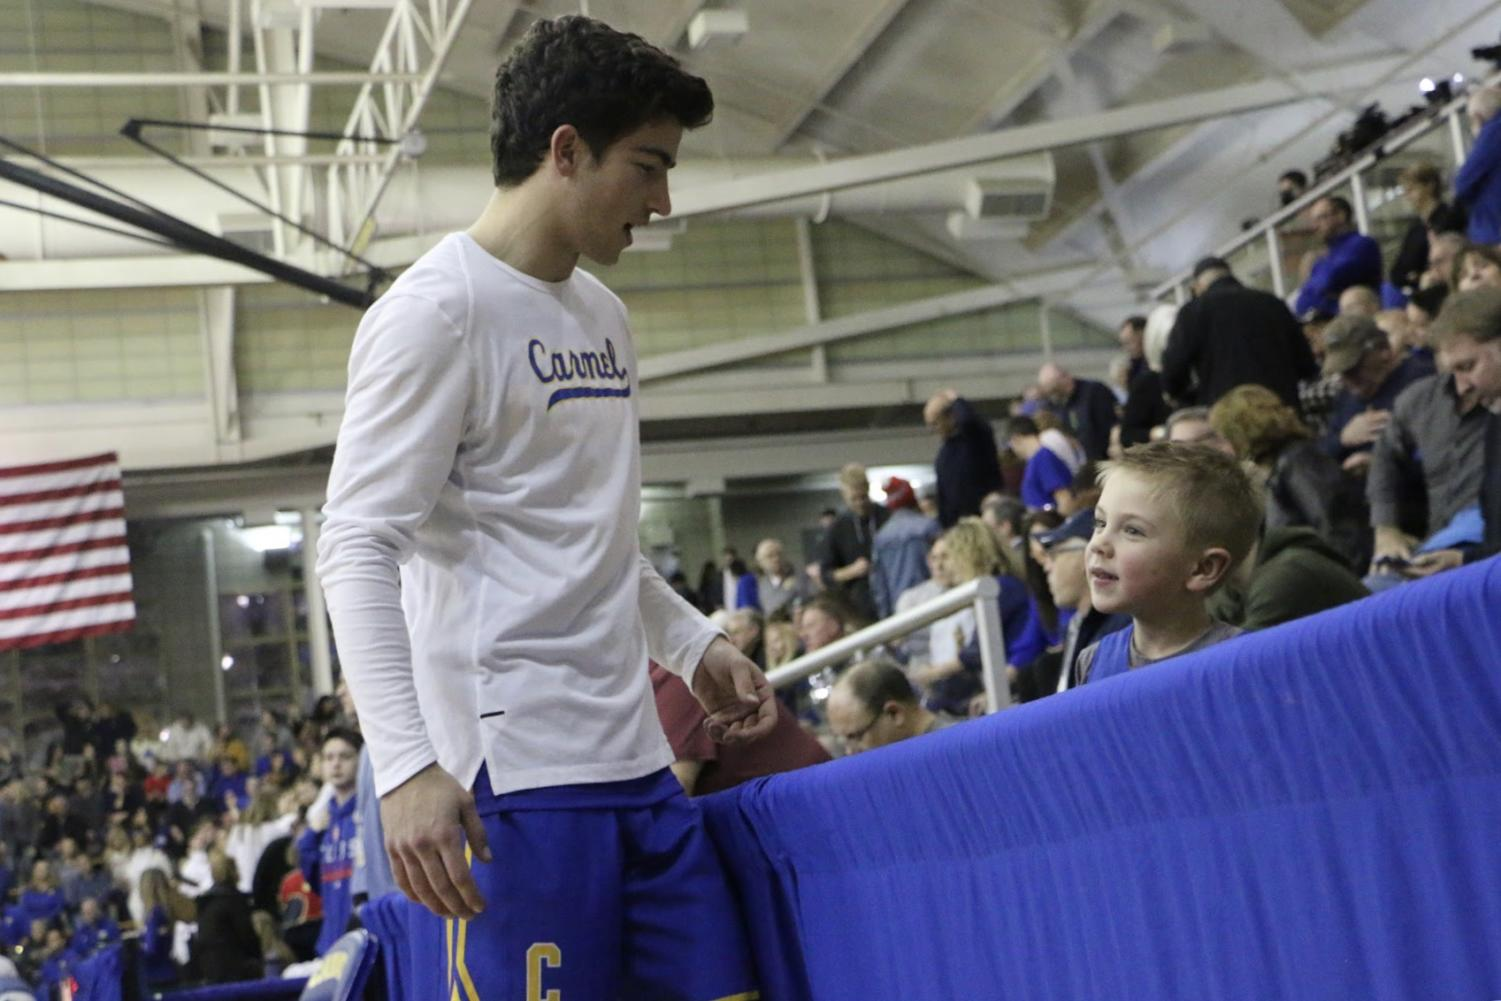 Men%27s+Basketball%3A%0ALucas+%28Luke%29+Heady%2C+men%E2%80%99s+basketball+player+and+senior%2C+chats+with+a+young+fan+prior+to+the+team%E2%80%99s+game+against+Fishers+on+March+1.+The+final+score+was+CHS+62%2C+Fishers+52.